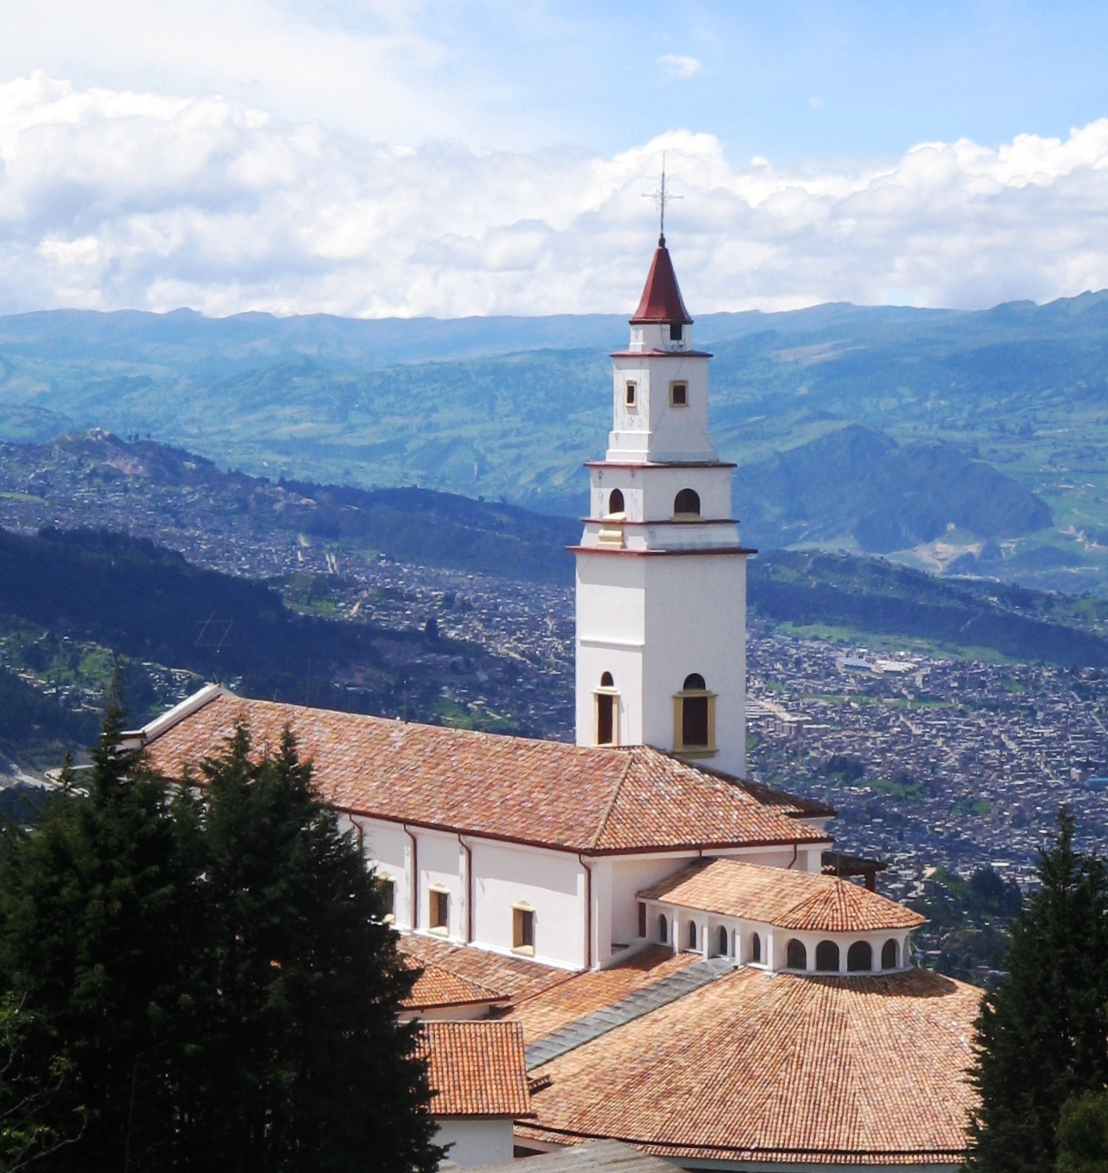 Monserrate Sanctuary (counts for 2 experiences)